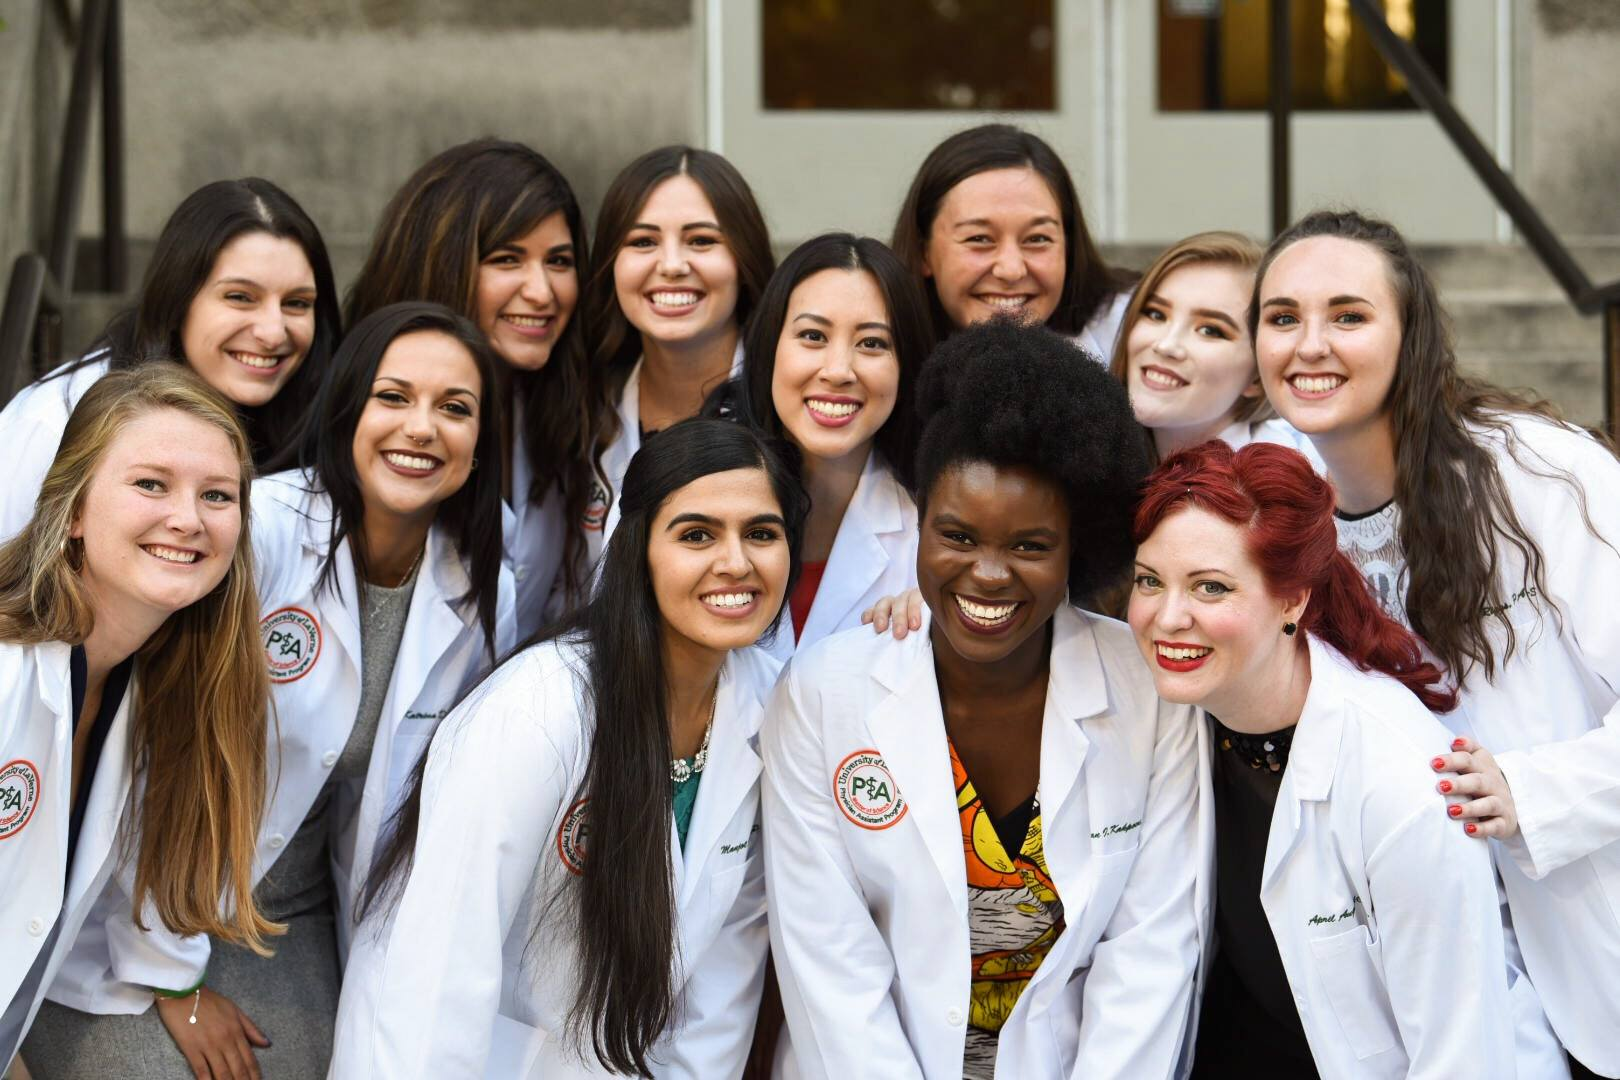 Students smile at the Physician's Assistant Program white coat ceremony.